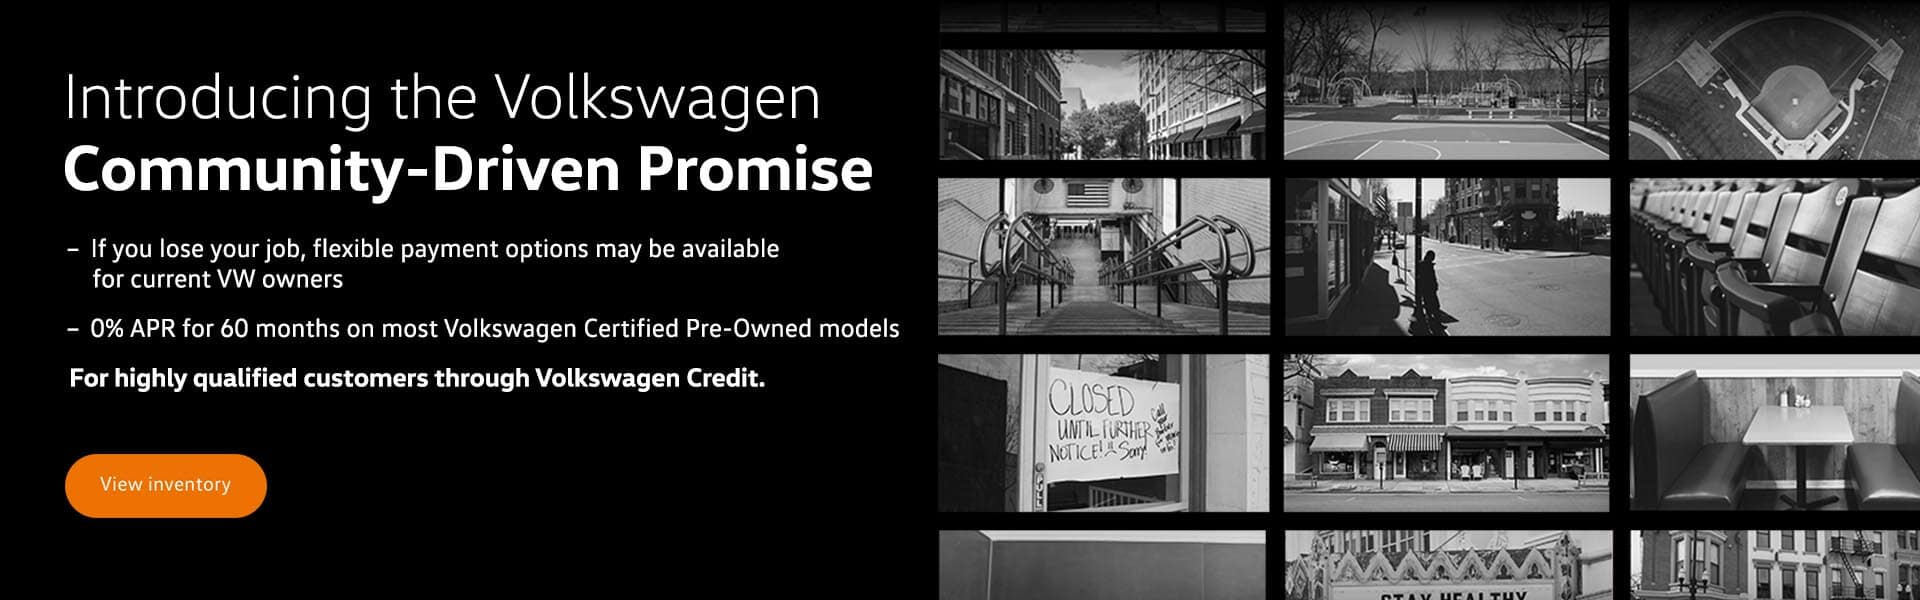 Introducing the VW Community Driven Promise